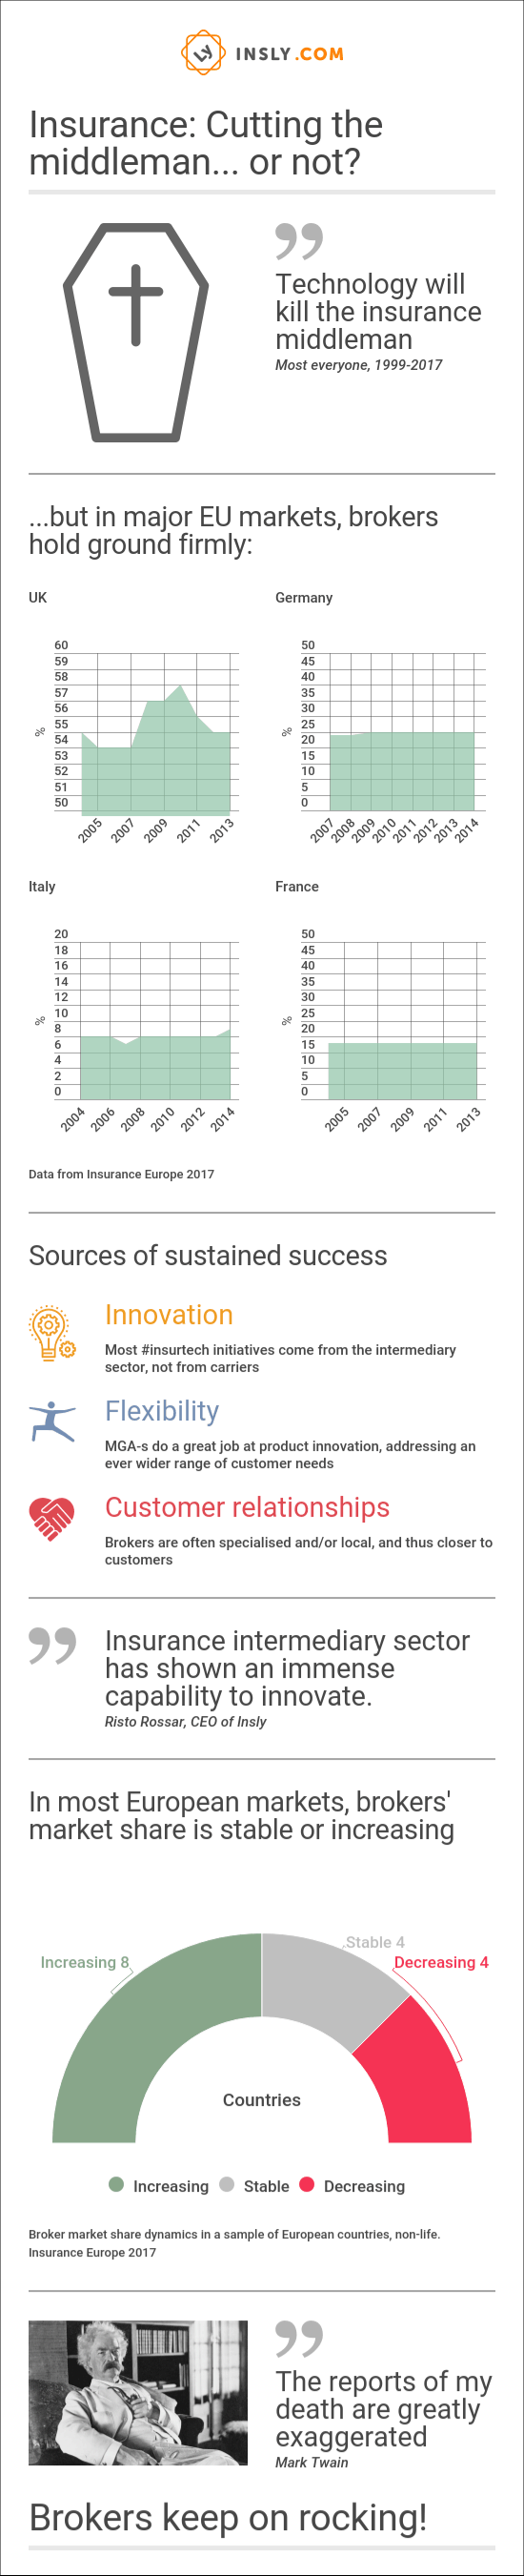 Infographic: Cutting the Middleman - or not?